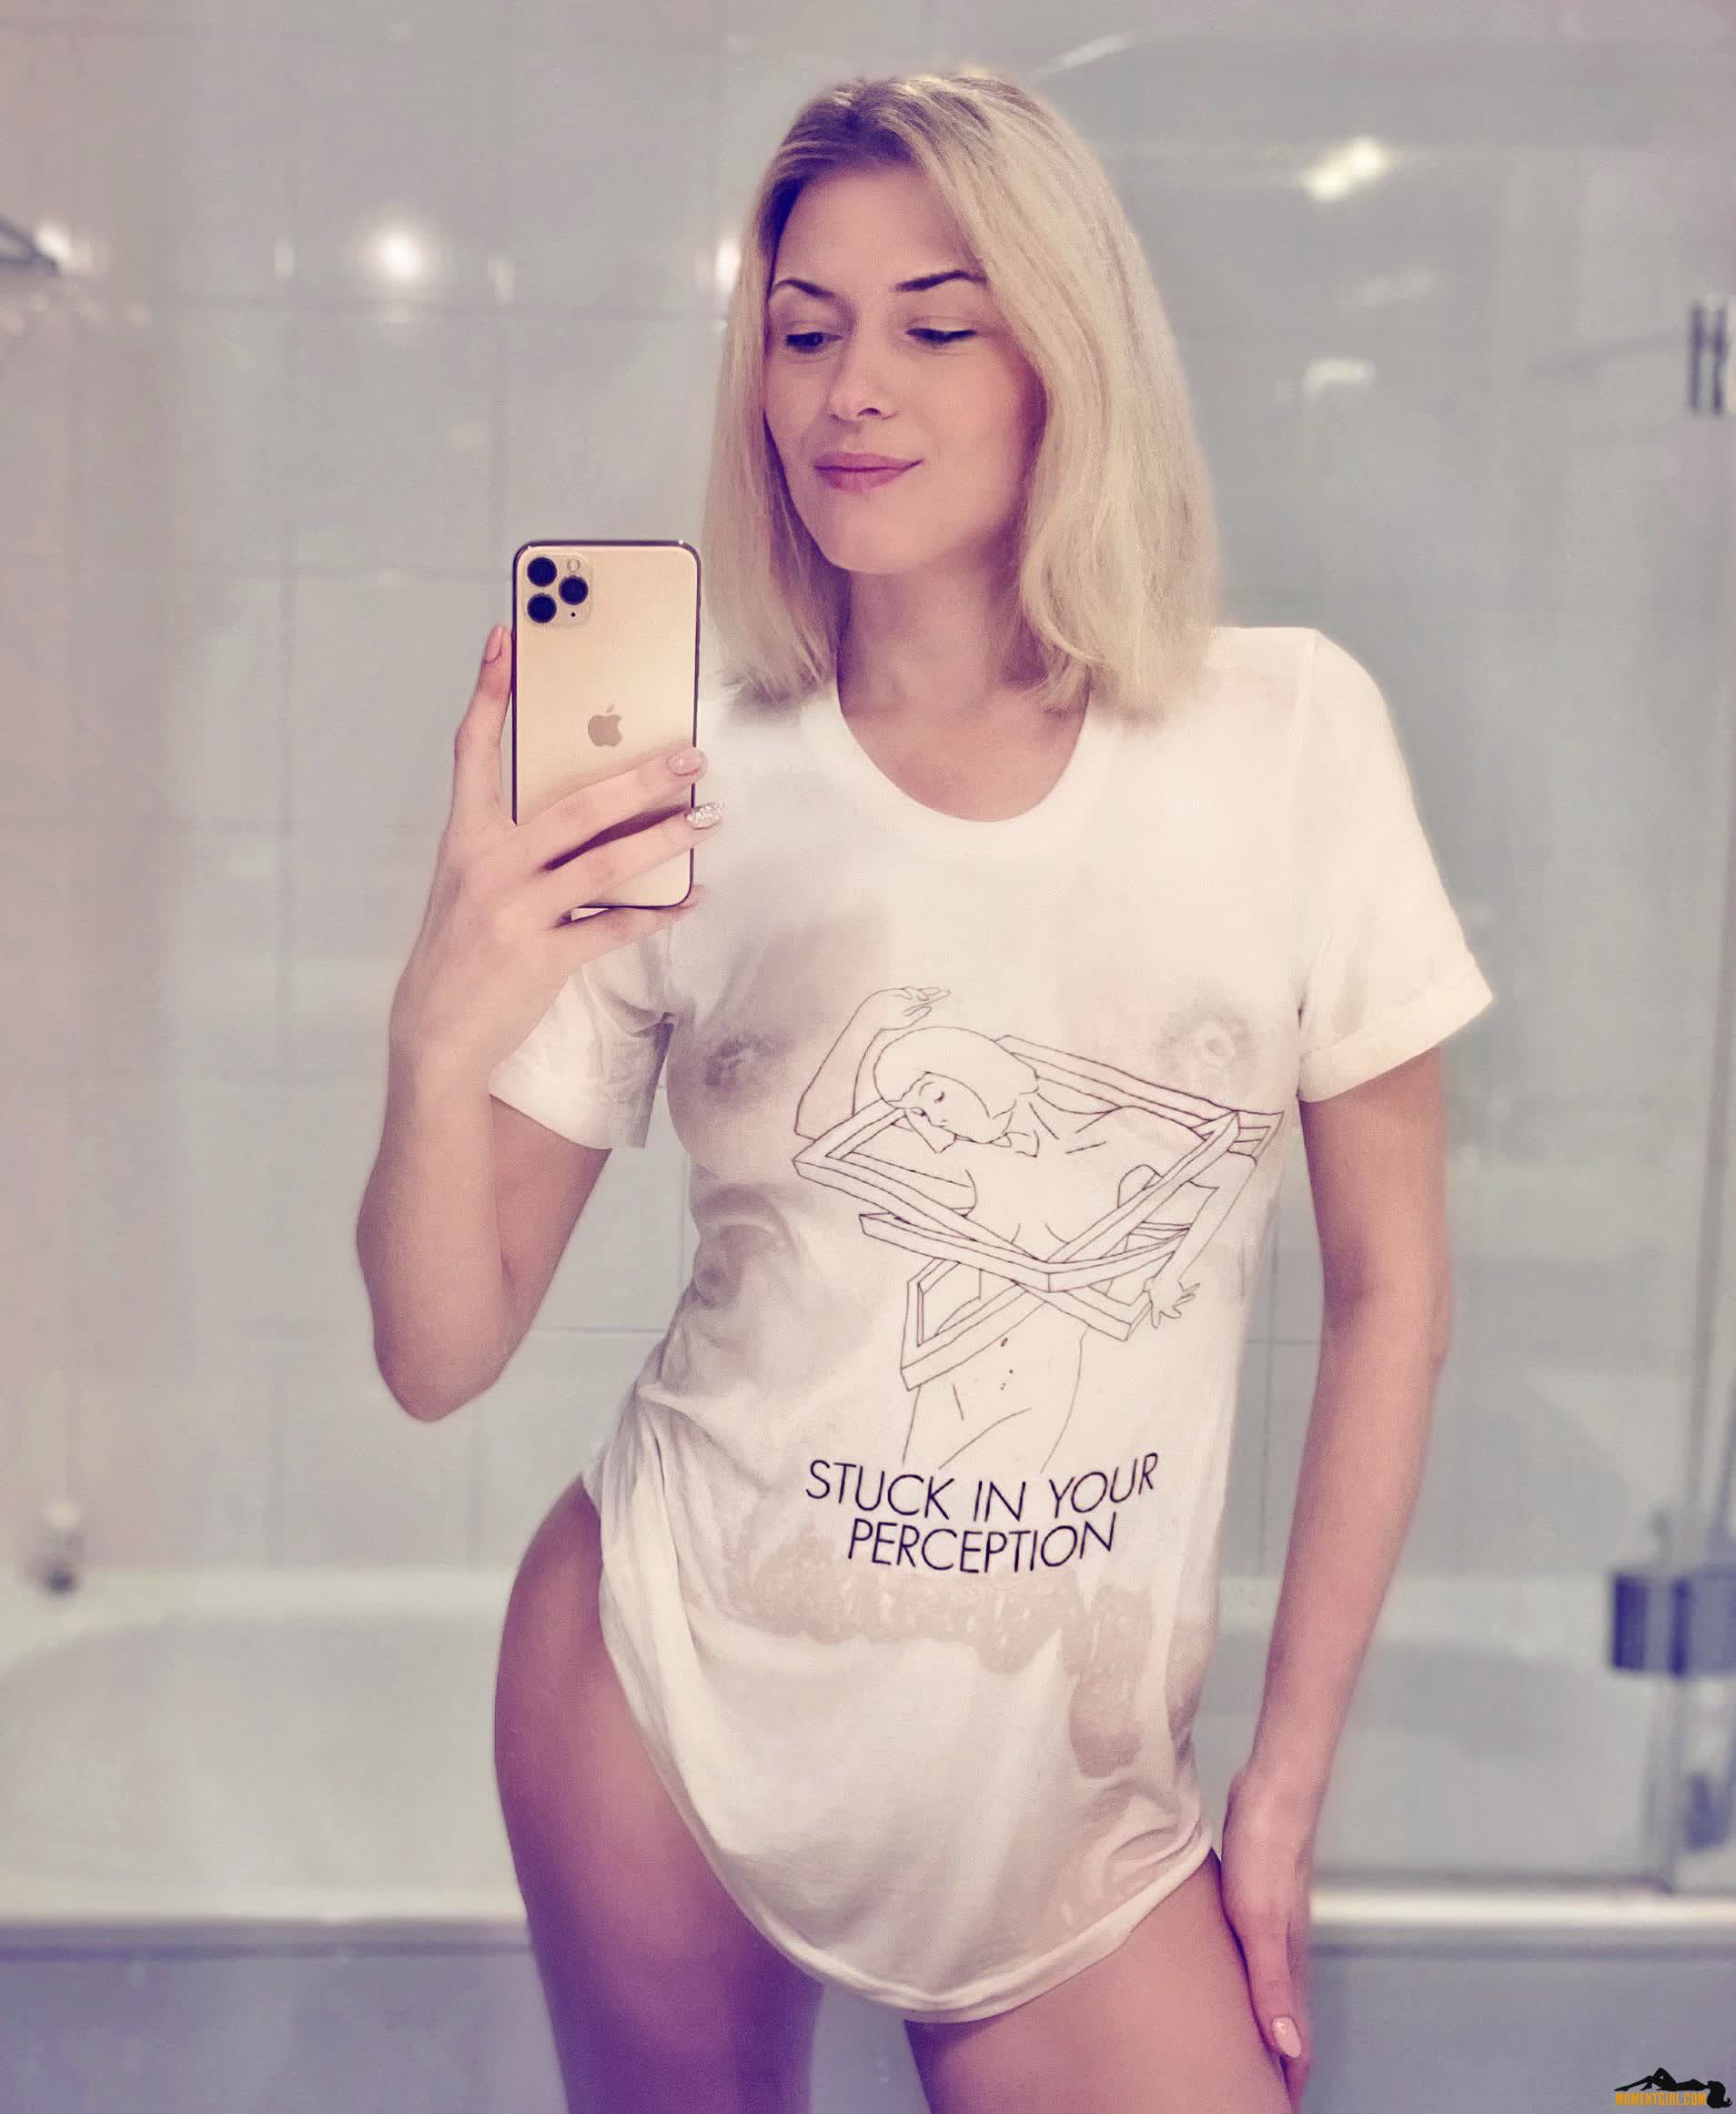 Caption Not Needed Tshirt Says It All . I'm Looking For A Partner, Follow The Instructions On Momentgirl.com To Contact Me! Tiktok Julypussy